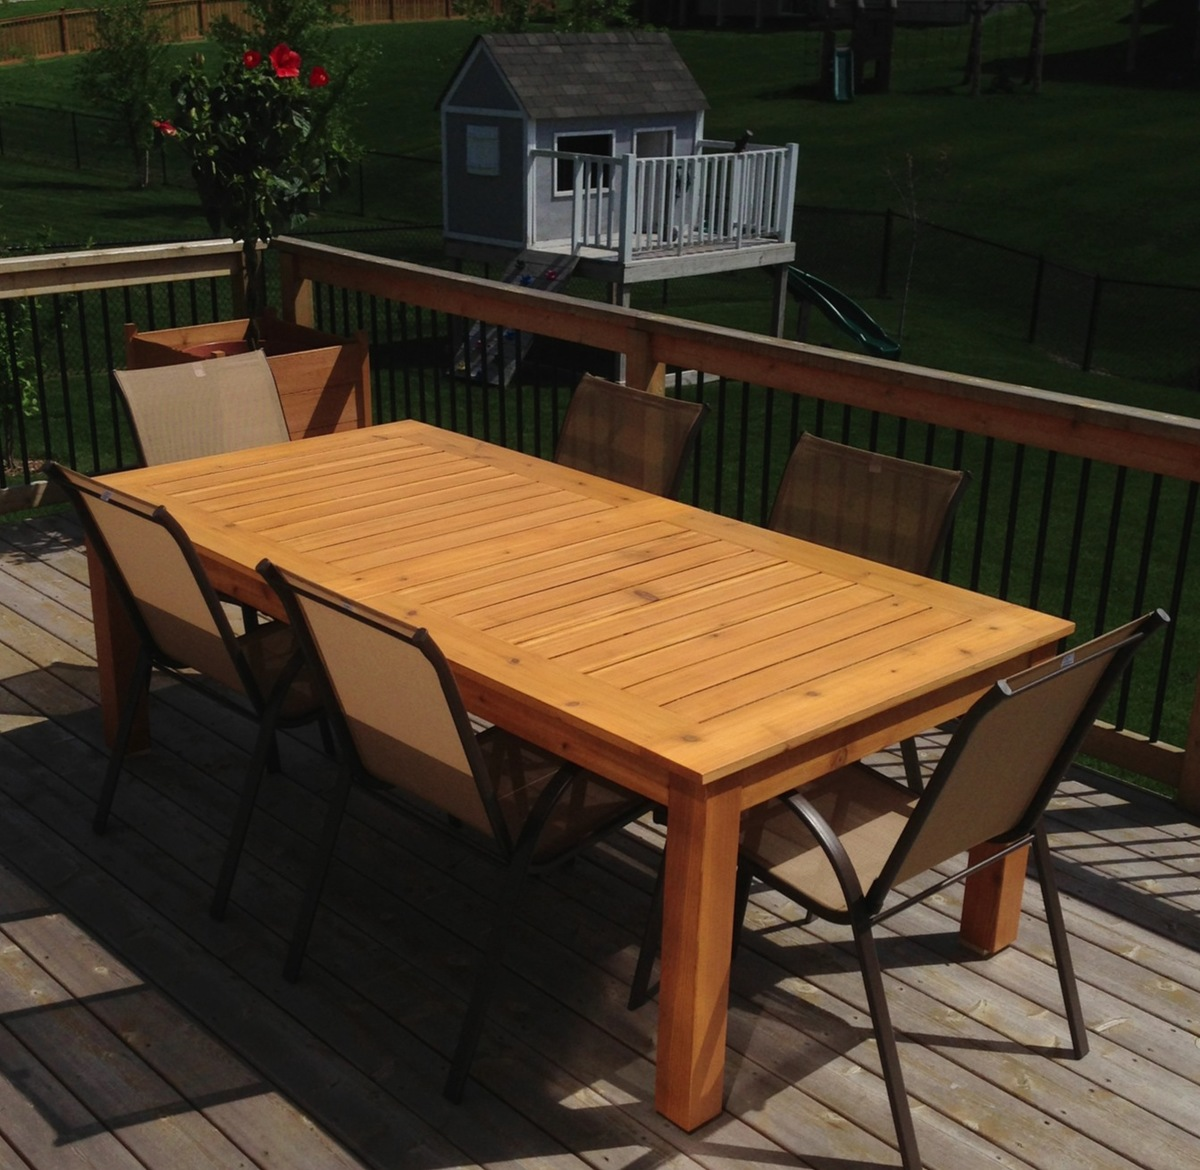 Simple Outdoor Kitchens: Simple Outdoor Table - DIY Projects